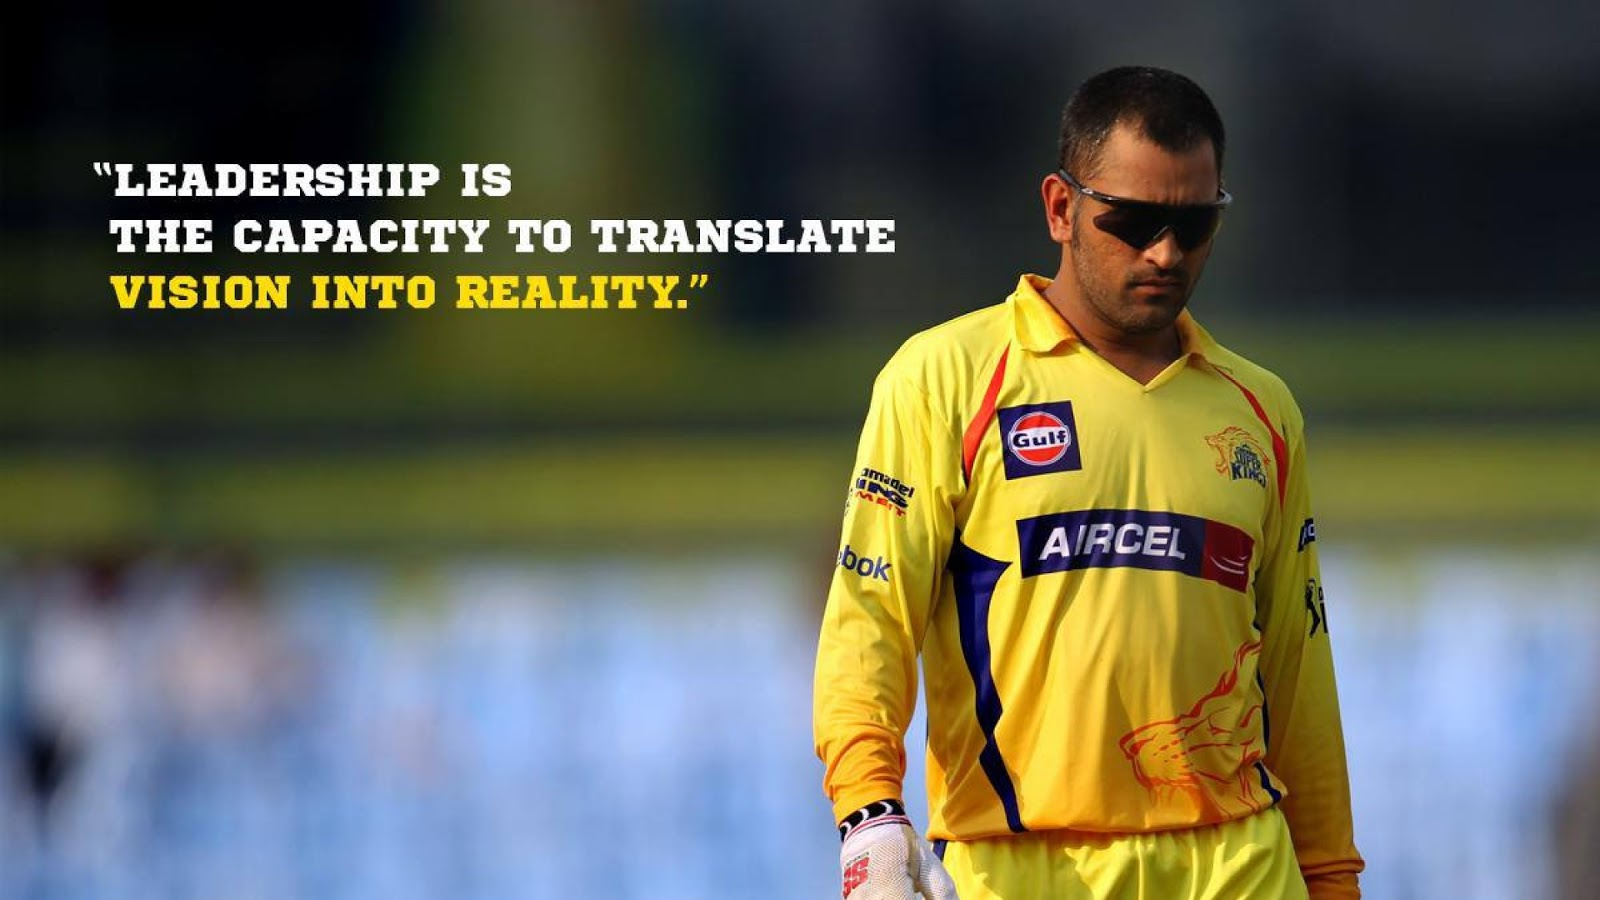 Dhoni Csk Wallpapers For Windows 7 Dhoni CSK wallpapers